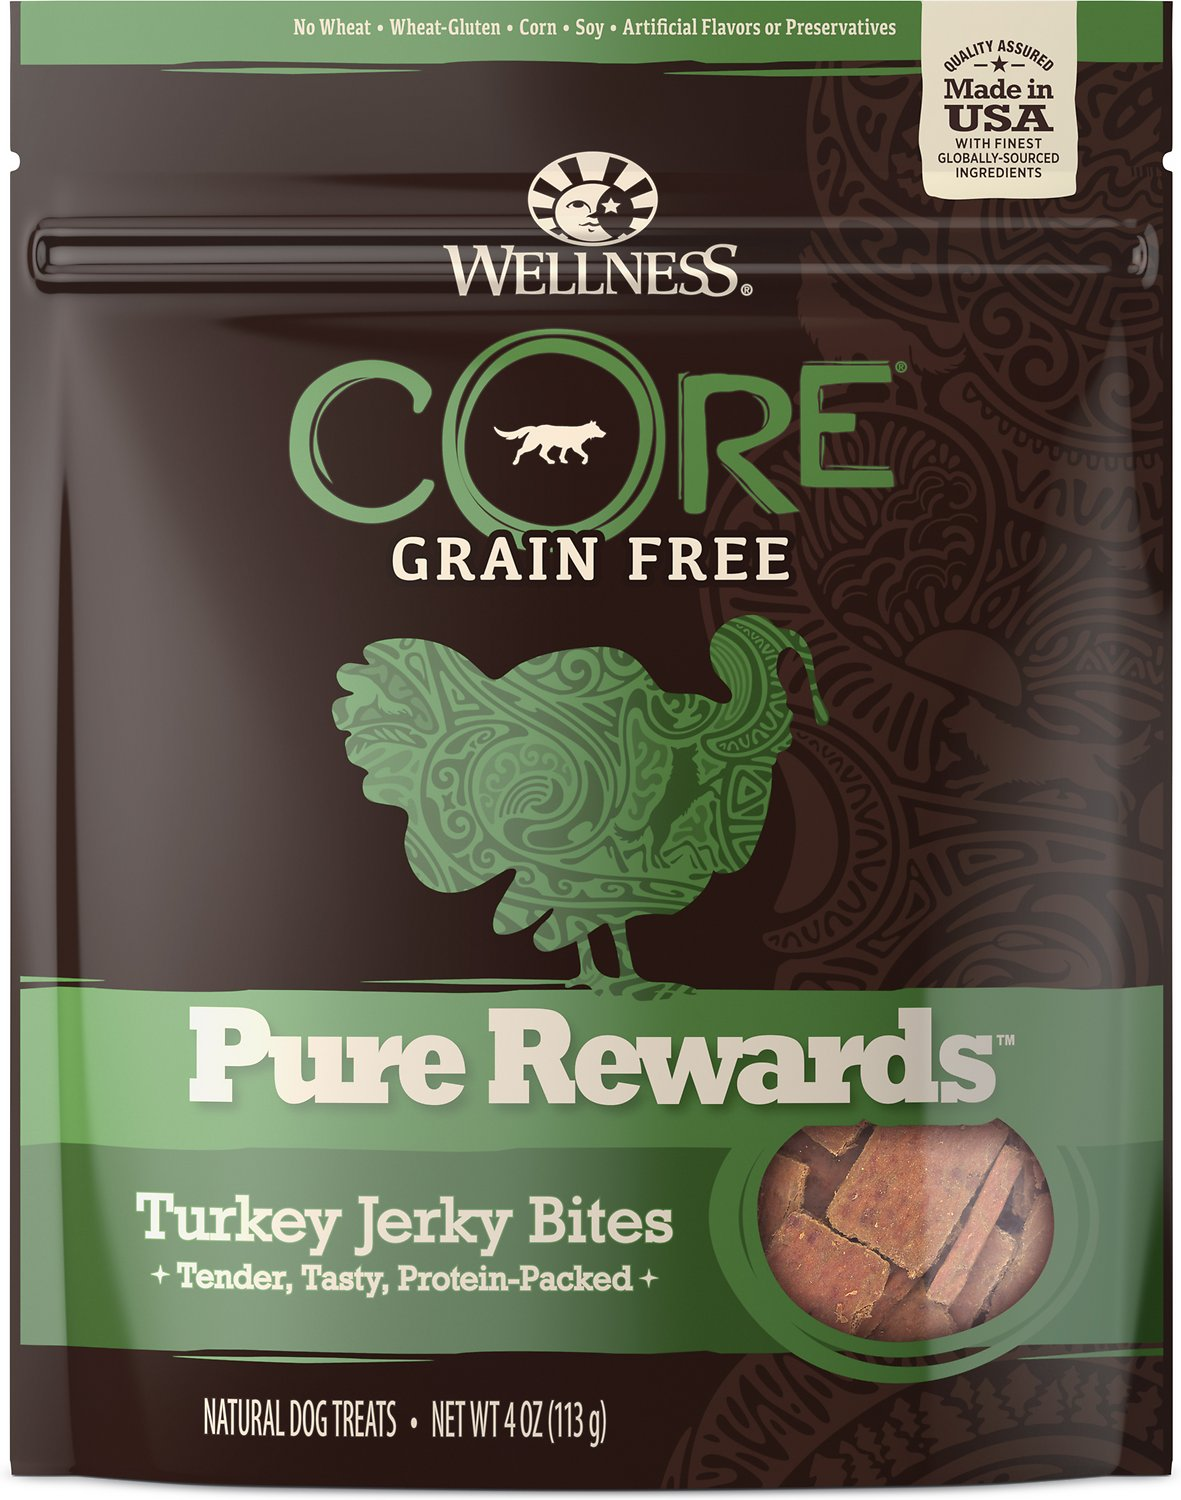 Wellness CORE Pure Rewards Grain-Free Turkey Jerky Bites Dog Treats, 4-oz bag